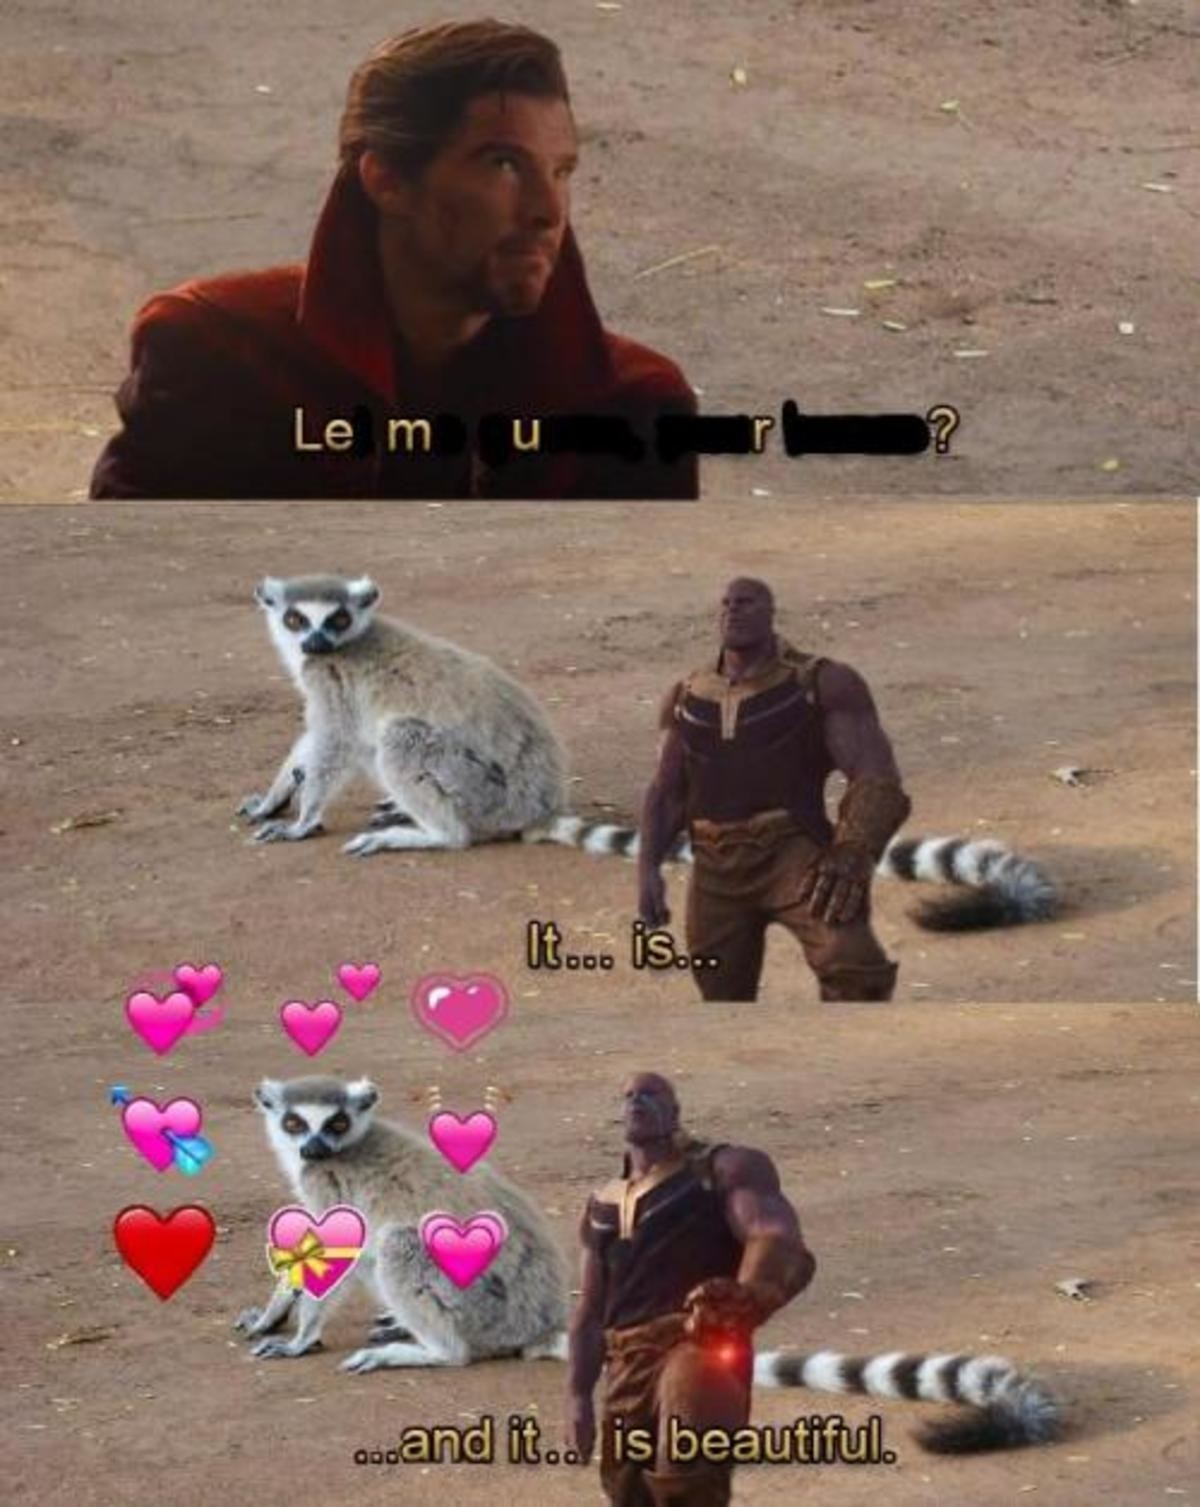 One Happy Thought. Big T with the Lemur bois join list: HappyThoughts (1573 subs)Mention History.. Sorry everyone, tiny post today, im pretty tired, ive spent all my time off work trying to start playing on a wow private server, and it finally worked, i recom